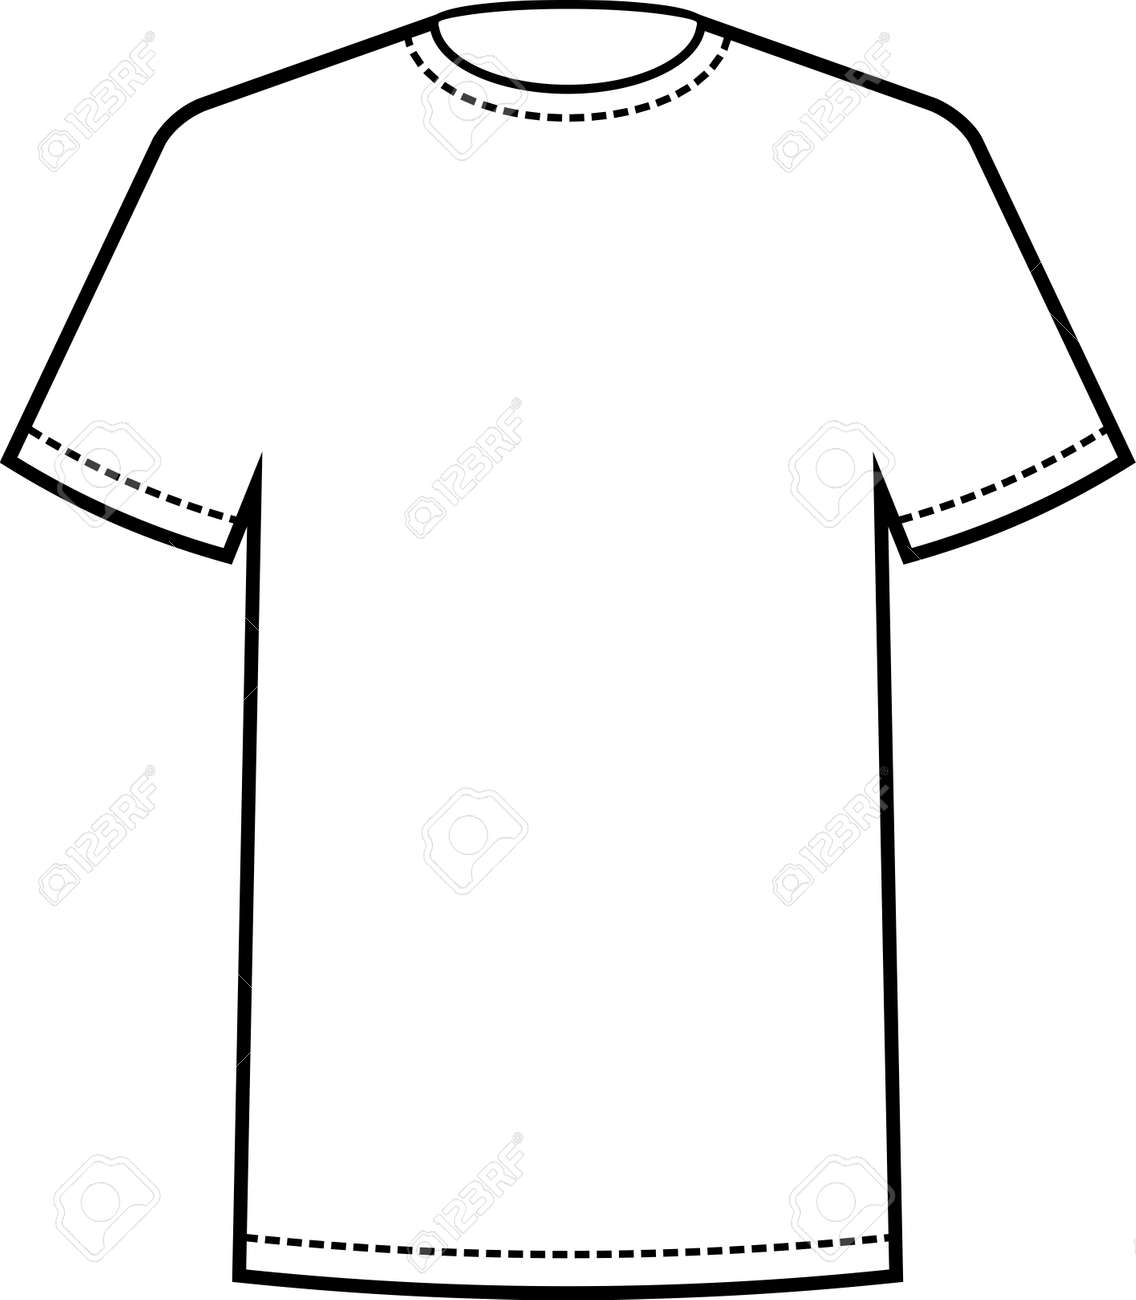 Blank White T Shirt Template Vector Stock